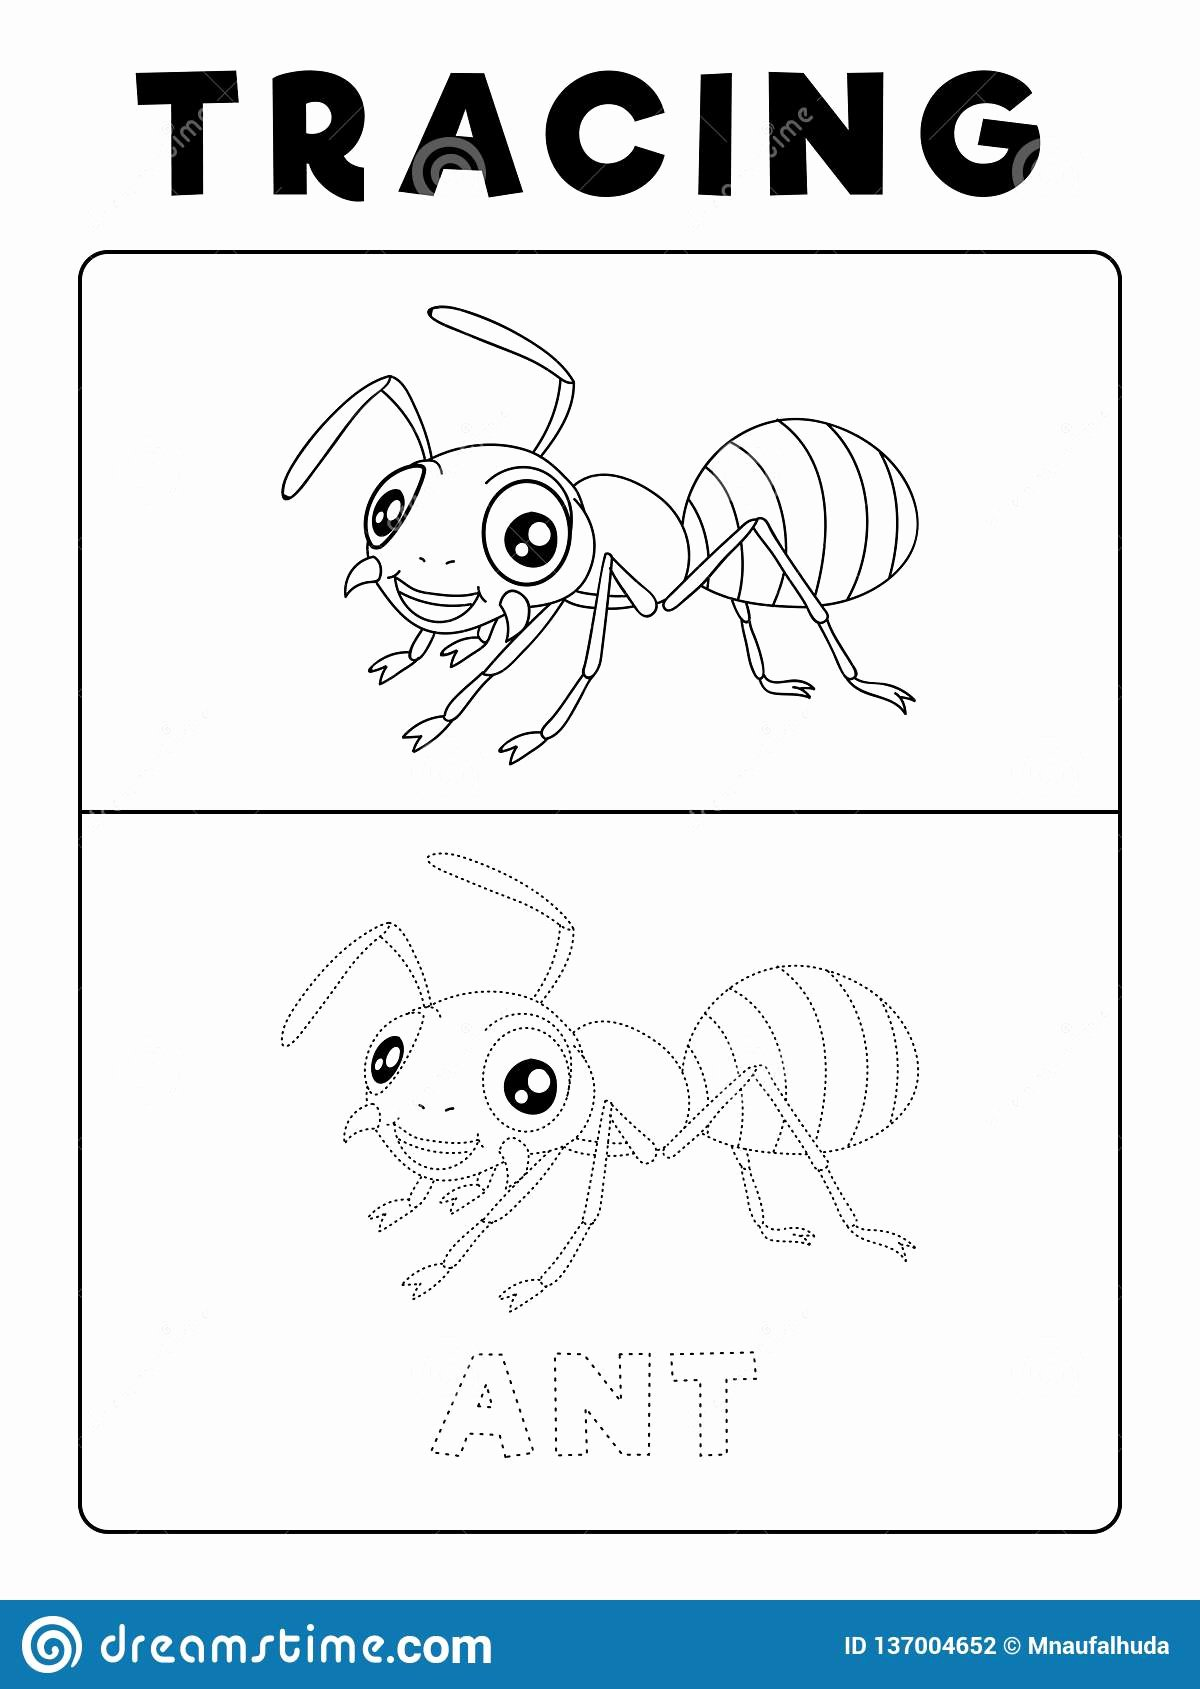 Ant Worksheets for Preschoolers Unique Funny Ant Insect Animal Tracing Book with Example Preschool